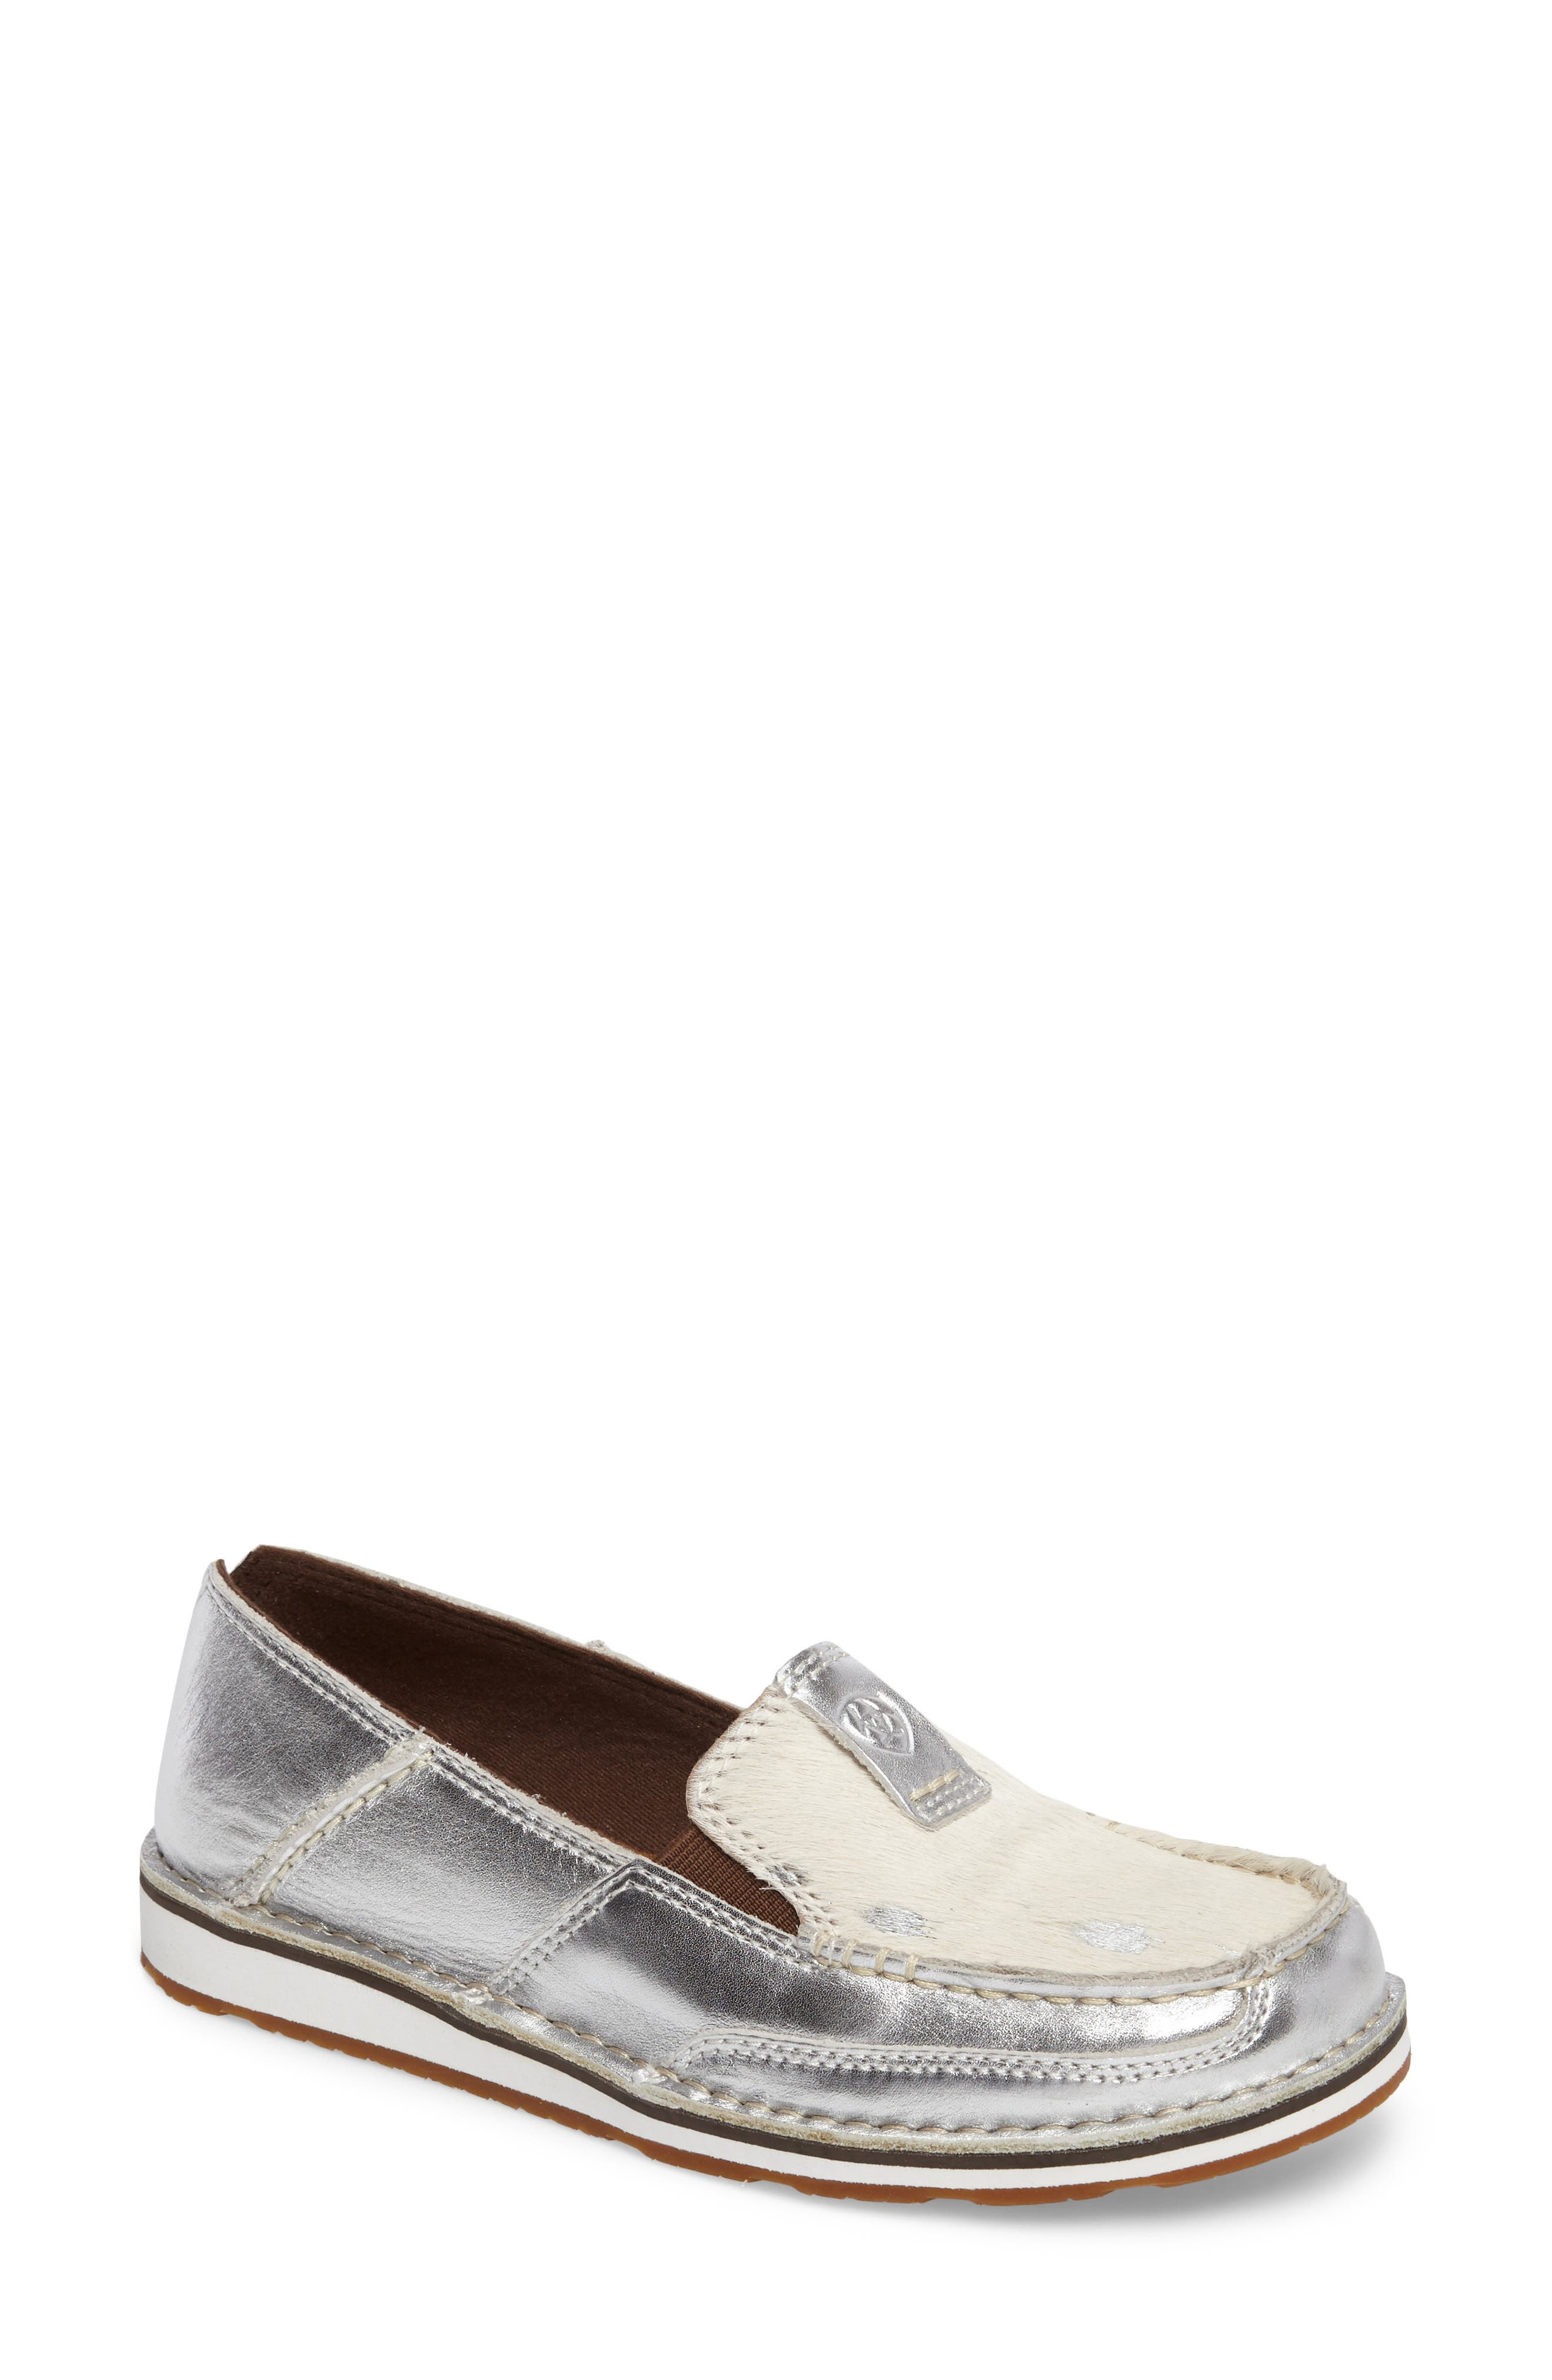 Alternate Image 1 Selected - Ariat Cruiser Genuine Calf Hair Slip-On Loafer (Women)